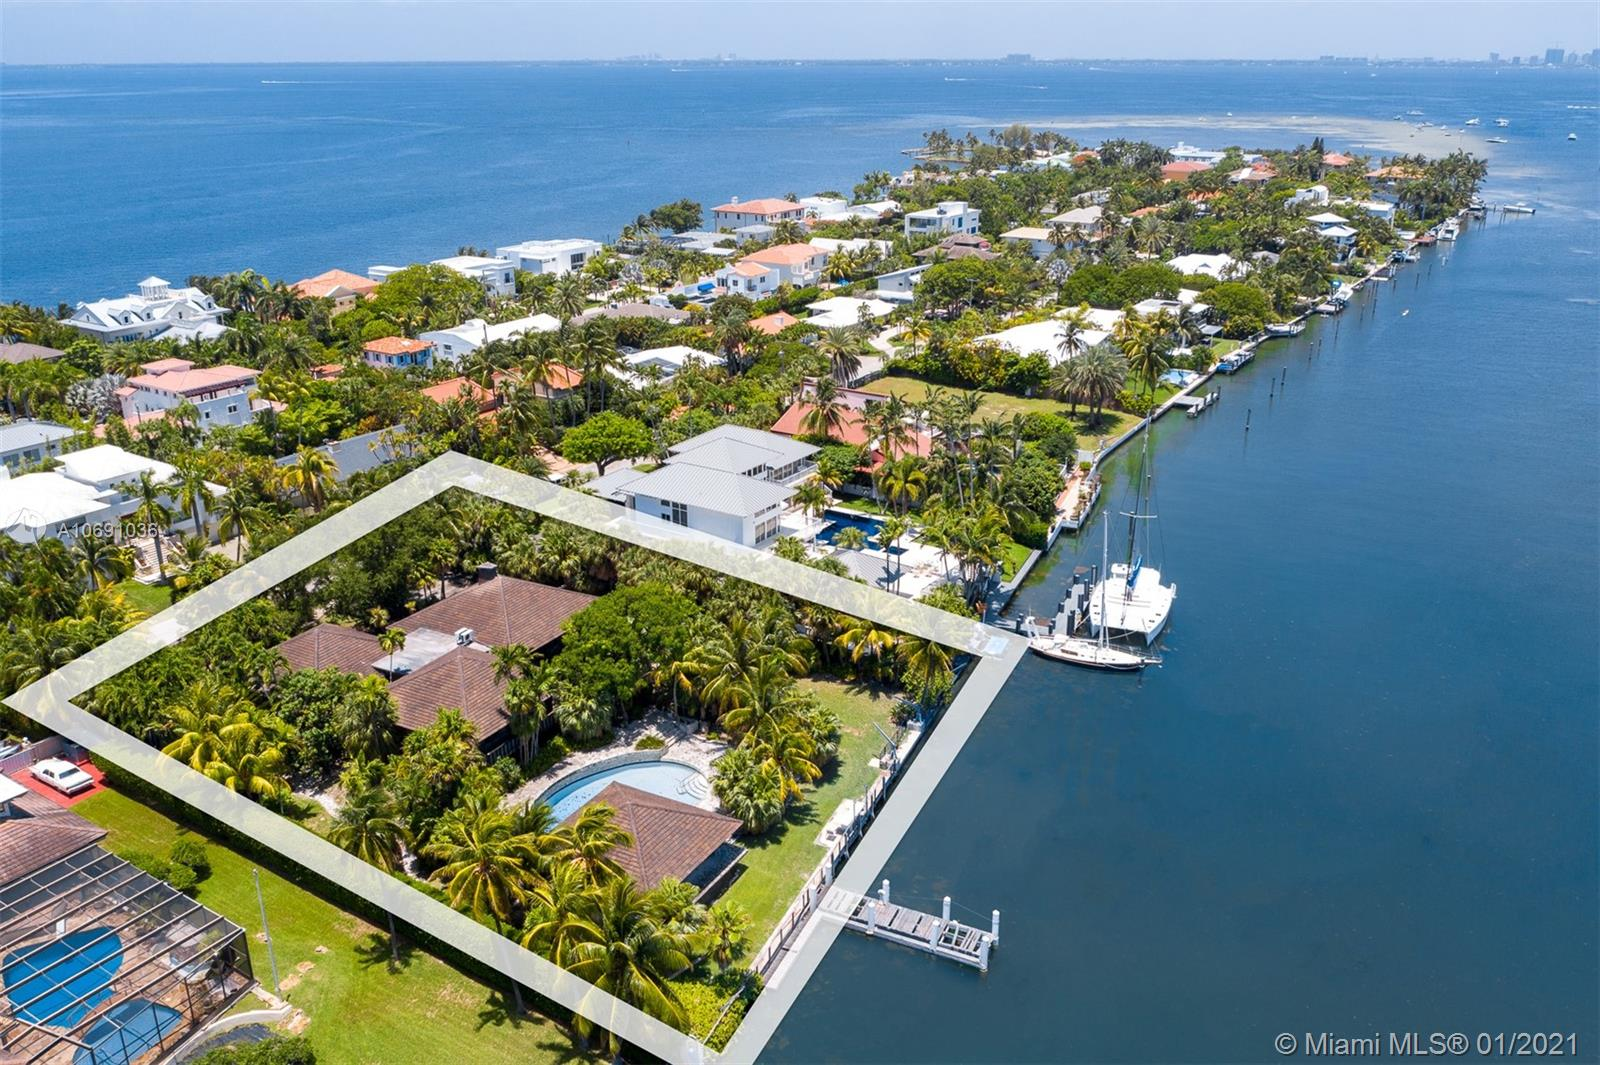 """Yachtsmans Paradise! Unique and rare opportunity to own one of the few remaining and most sought after double plus lots on private and wide bodied Hurricane Harbor. This oversized 31,996 sqft lot includes 152 linear ft seawall and a long dock jetting into the harbor. Ideal for multiple boat dockage and/or yacht. Unique custom built and """"over built"""" Polynesian style 4/3.5 pool home plus separate guest house. Home features Guyana Greenheart wood, teak, copper and coral rock. Ideal residence for entertaining with expansive coral rock patios and large pool with waterfall."""